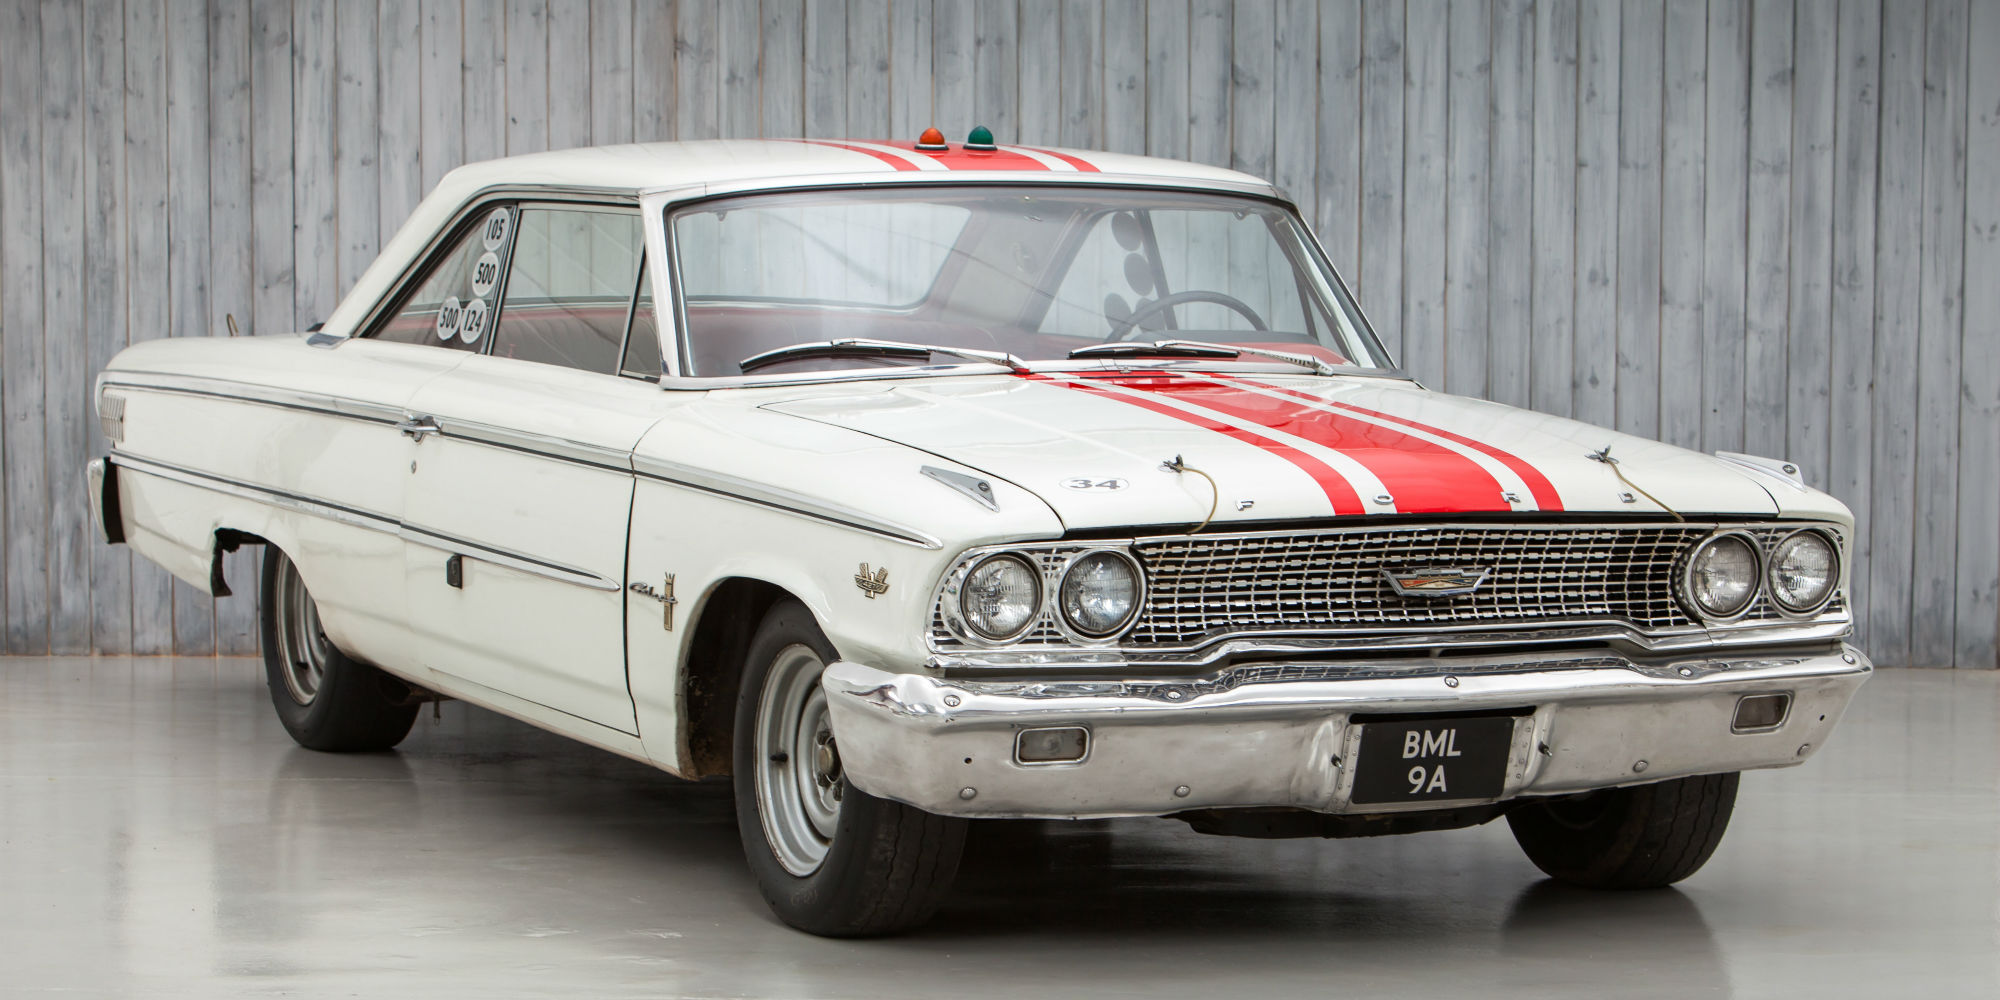 The ex jack sears willment racing team british saloon car champion 1963 ford galaxie 500 r code lightweight